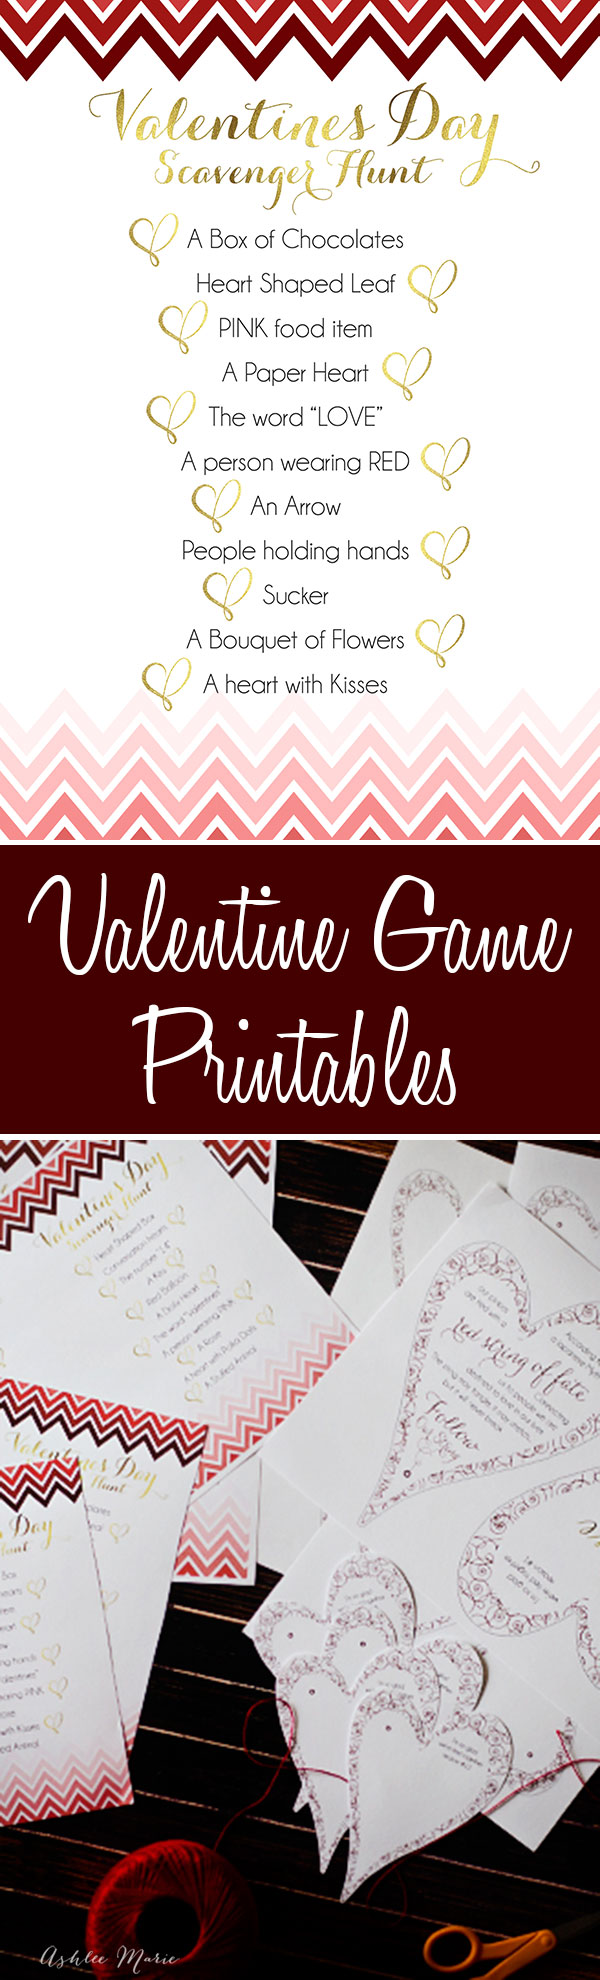 free printables for two versions of a valentines scavenger hunts